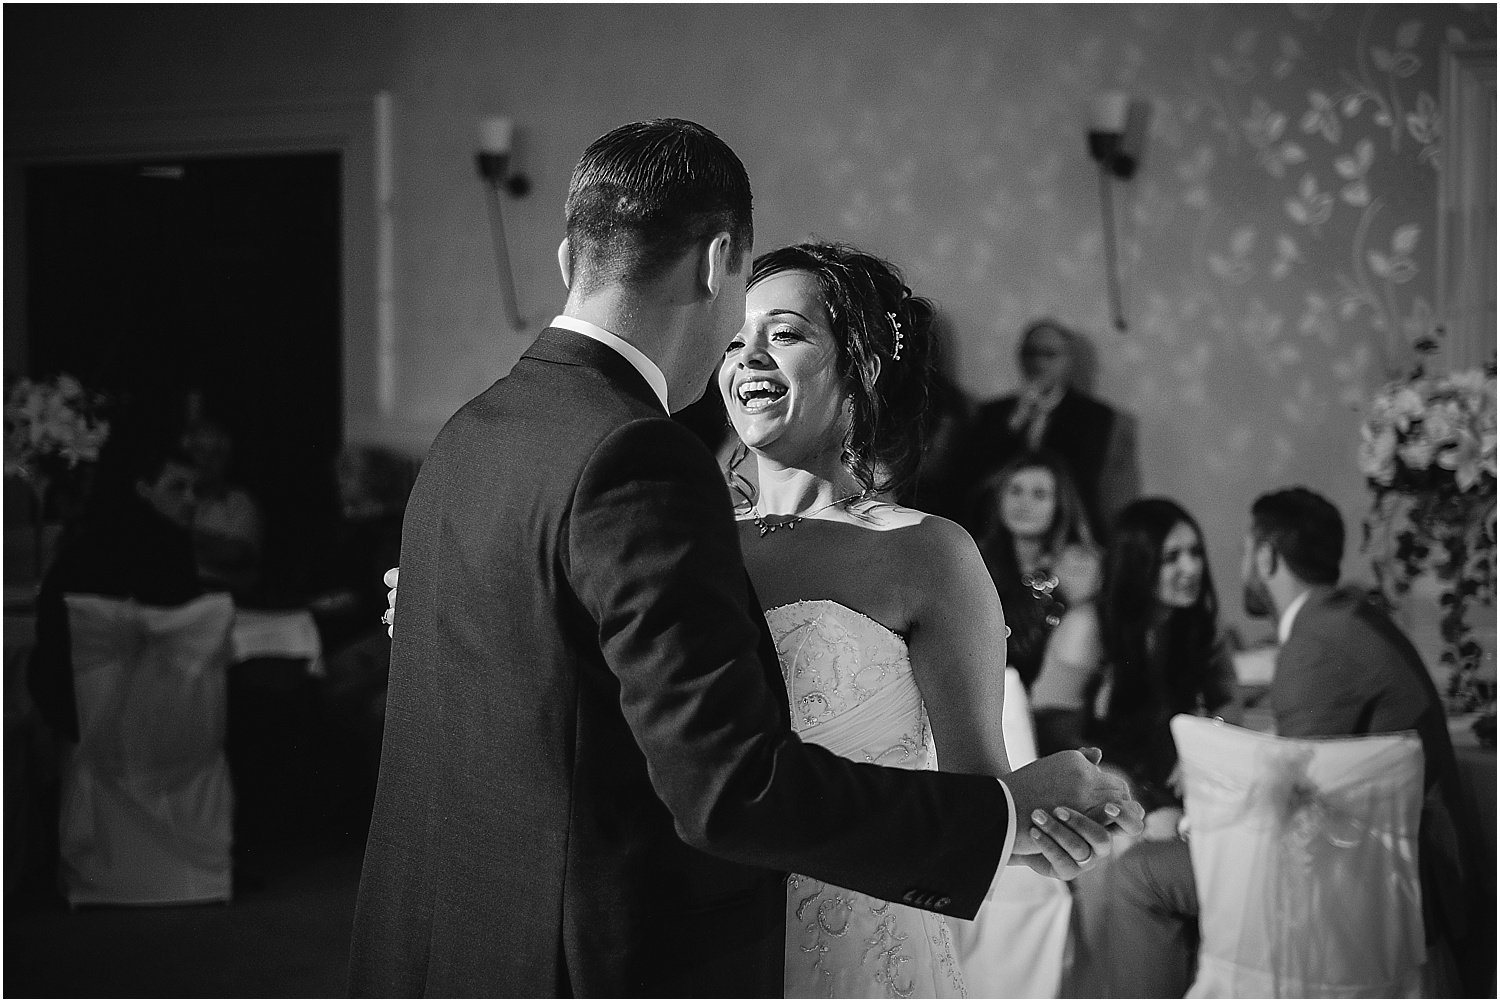 Wedding at Seaham Hall - wedding photography by www.2tonephotography.co.uk 078.jpg